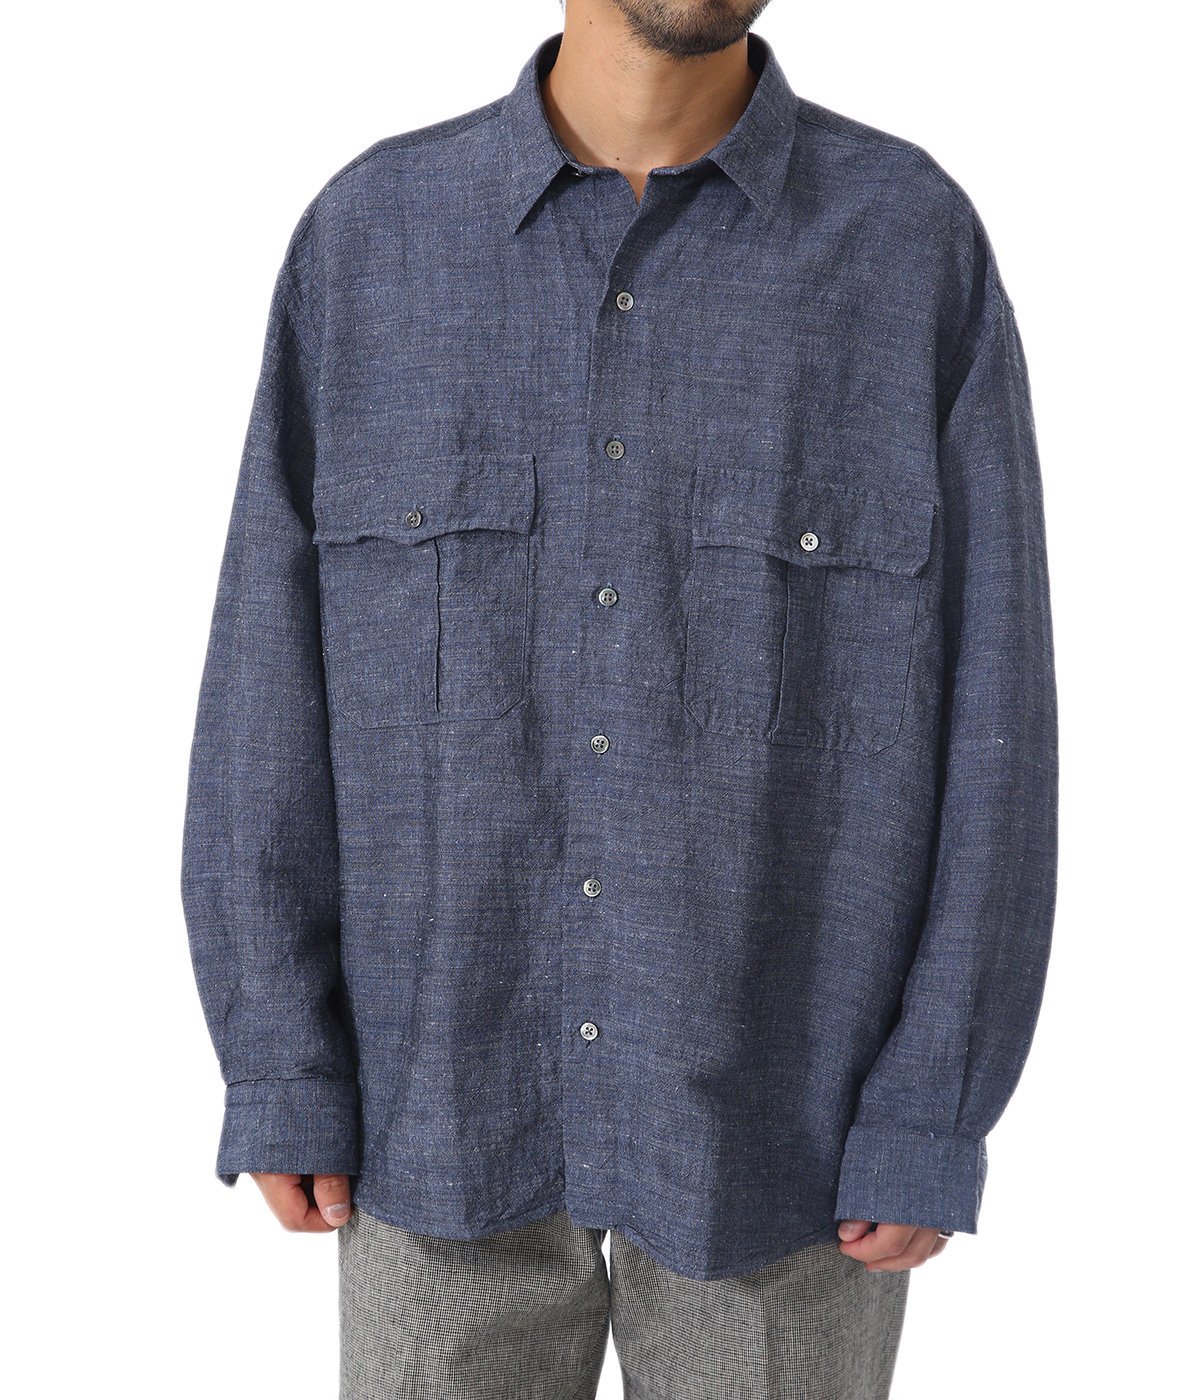 ROLL UP BAMBOO LINEN SHIRT